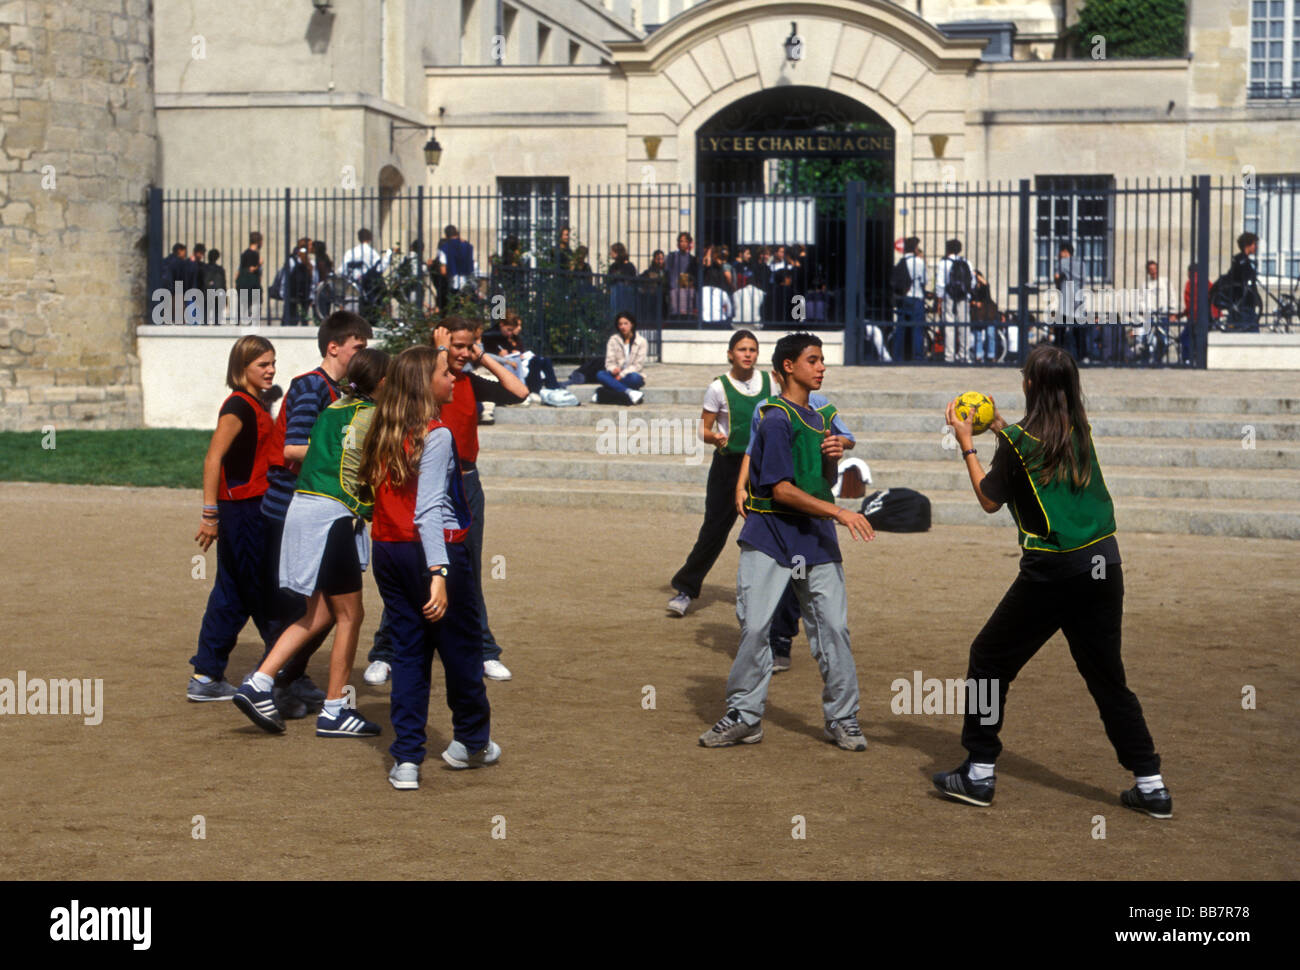 French boys, boys, and, French girls, girls, French students, teens, teenagers, playing ballgame, Lycee Charlemagne, - Stock Image